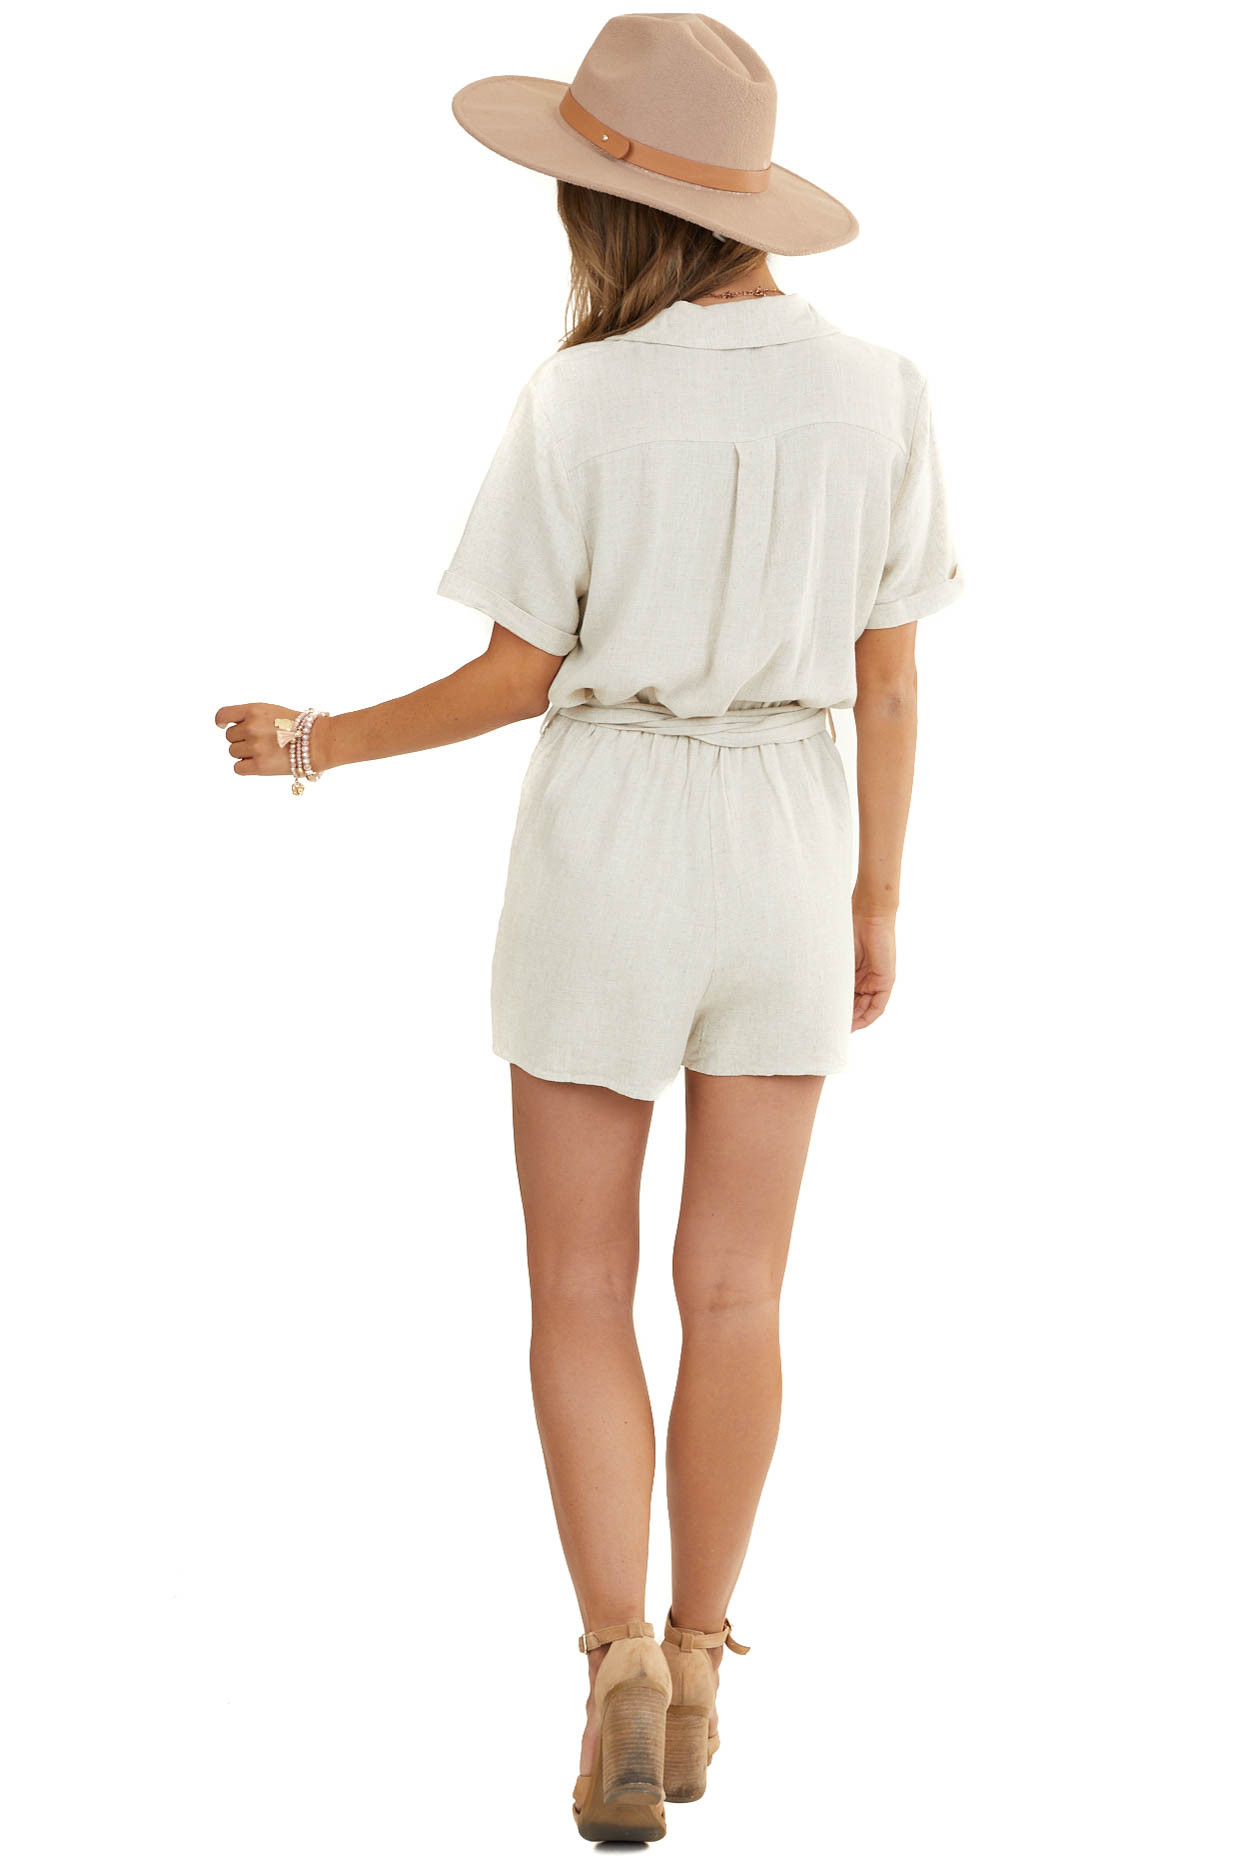 Oatmeal Collared Button Up Romper with Belt Waist Detail